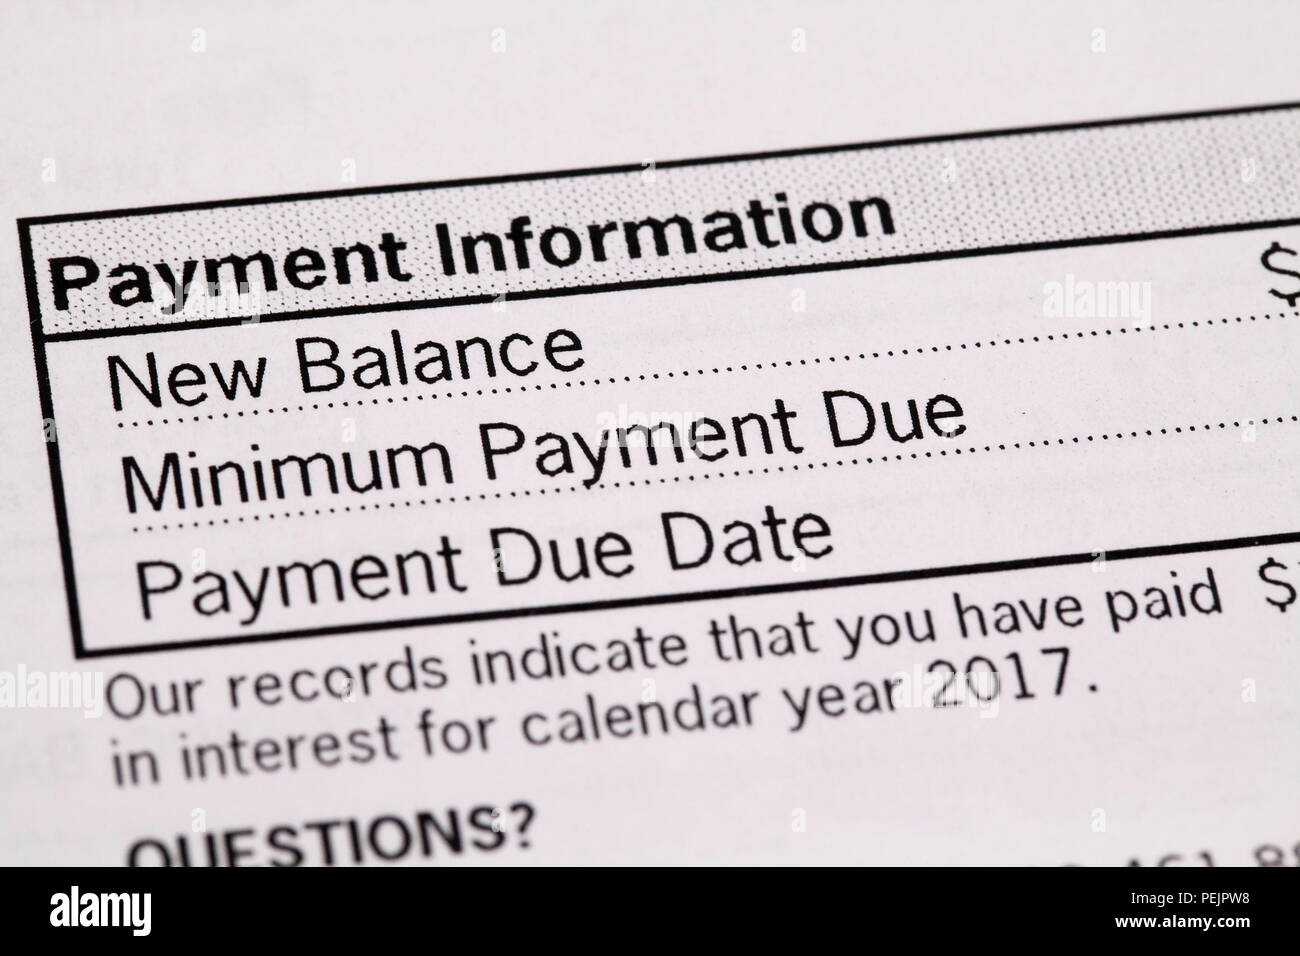 Home mortgage loan monthly statement showing payment information - USA - Stock Image